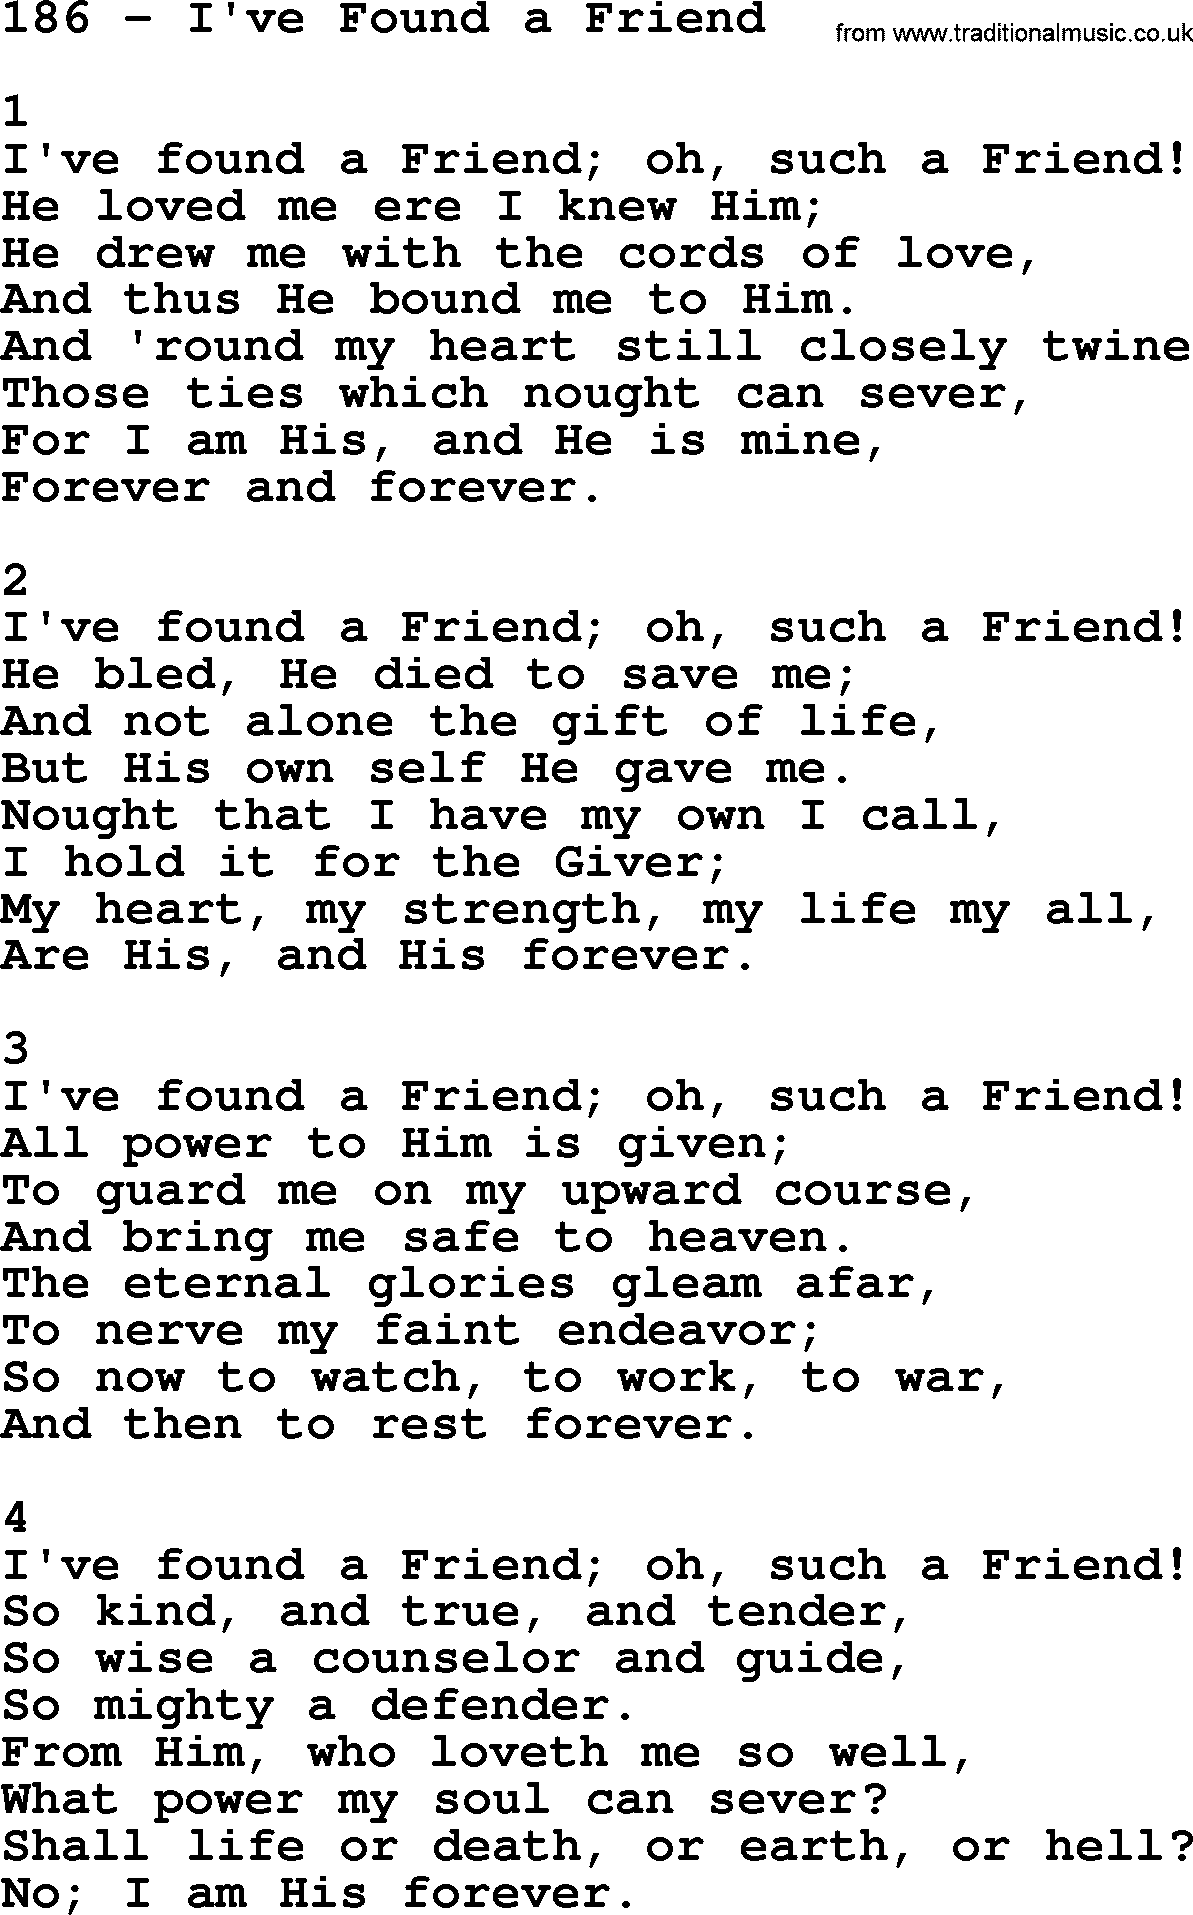 Adventist Hymnal, Song: 186-I've Found A Friend, with Lyrics, PPT ...